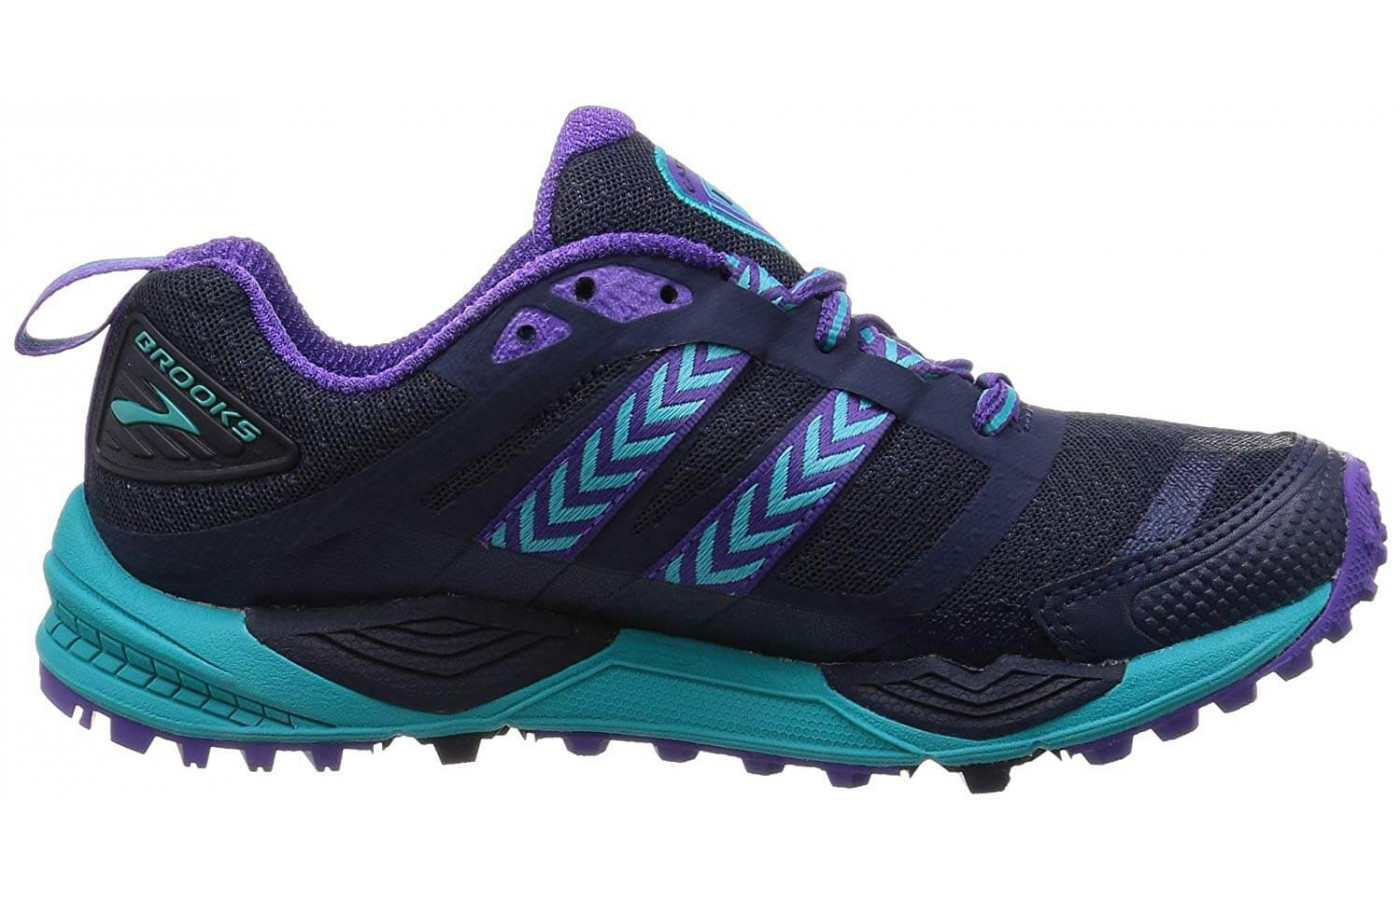 5032b2a5f040a Brooks Cascadia 12 Reviewed - To Buy or Not in May 2019